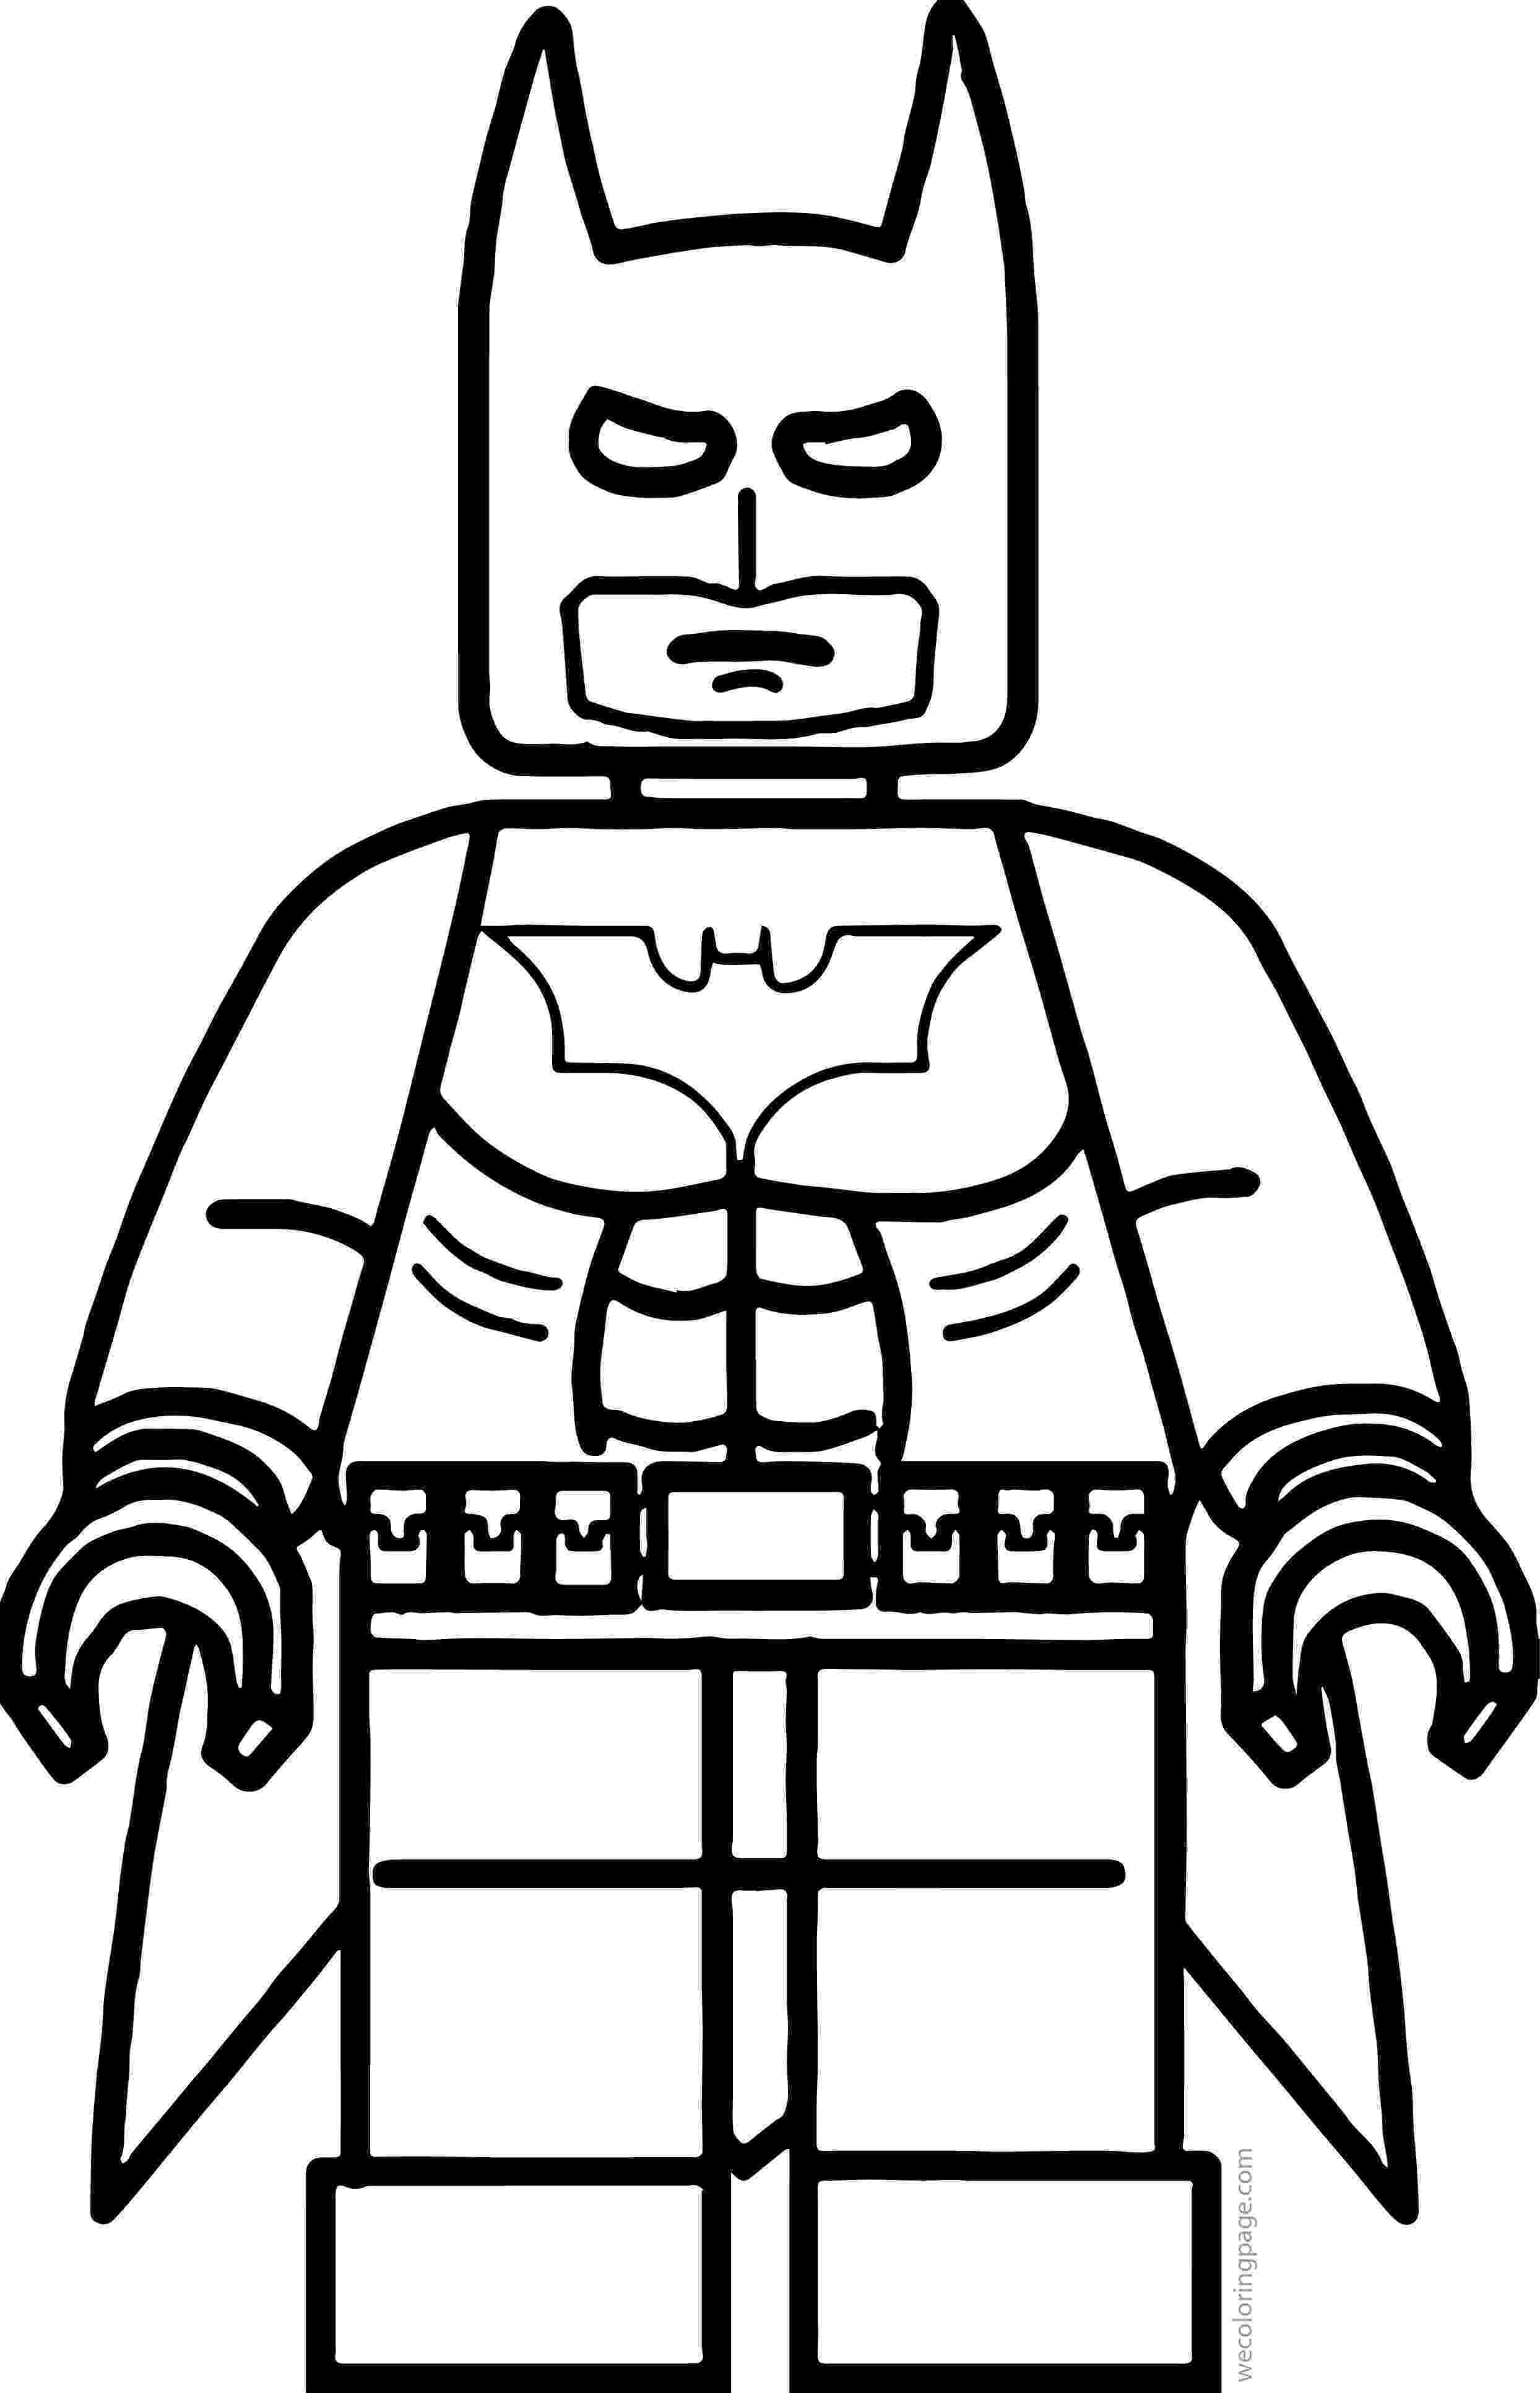 free printable coloring pages lego batman lego batman coloring page batman coloring pages lego pages free lego printable batman coloring